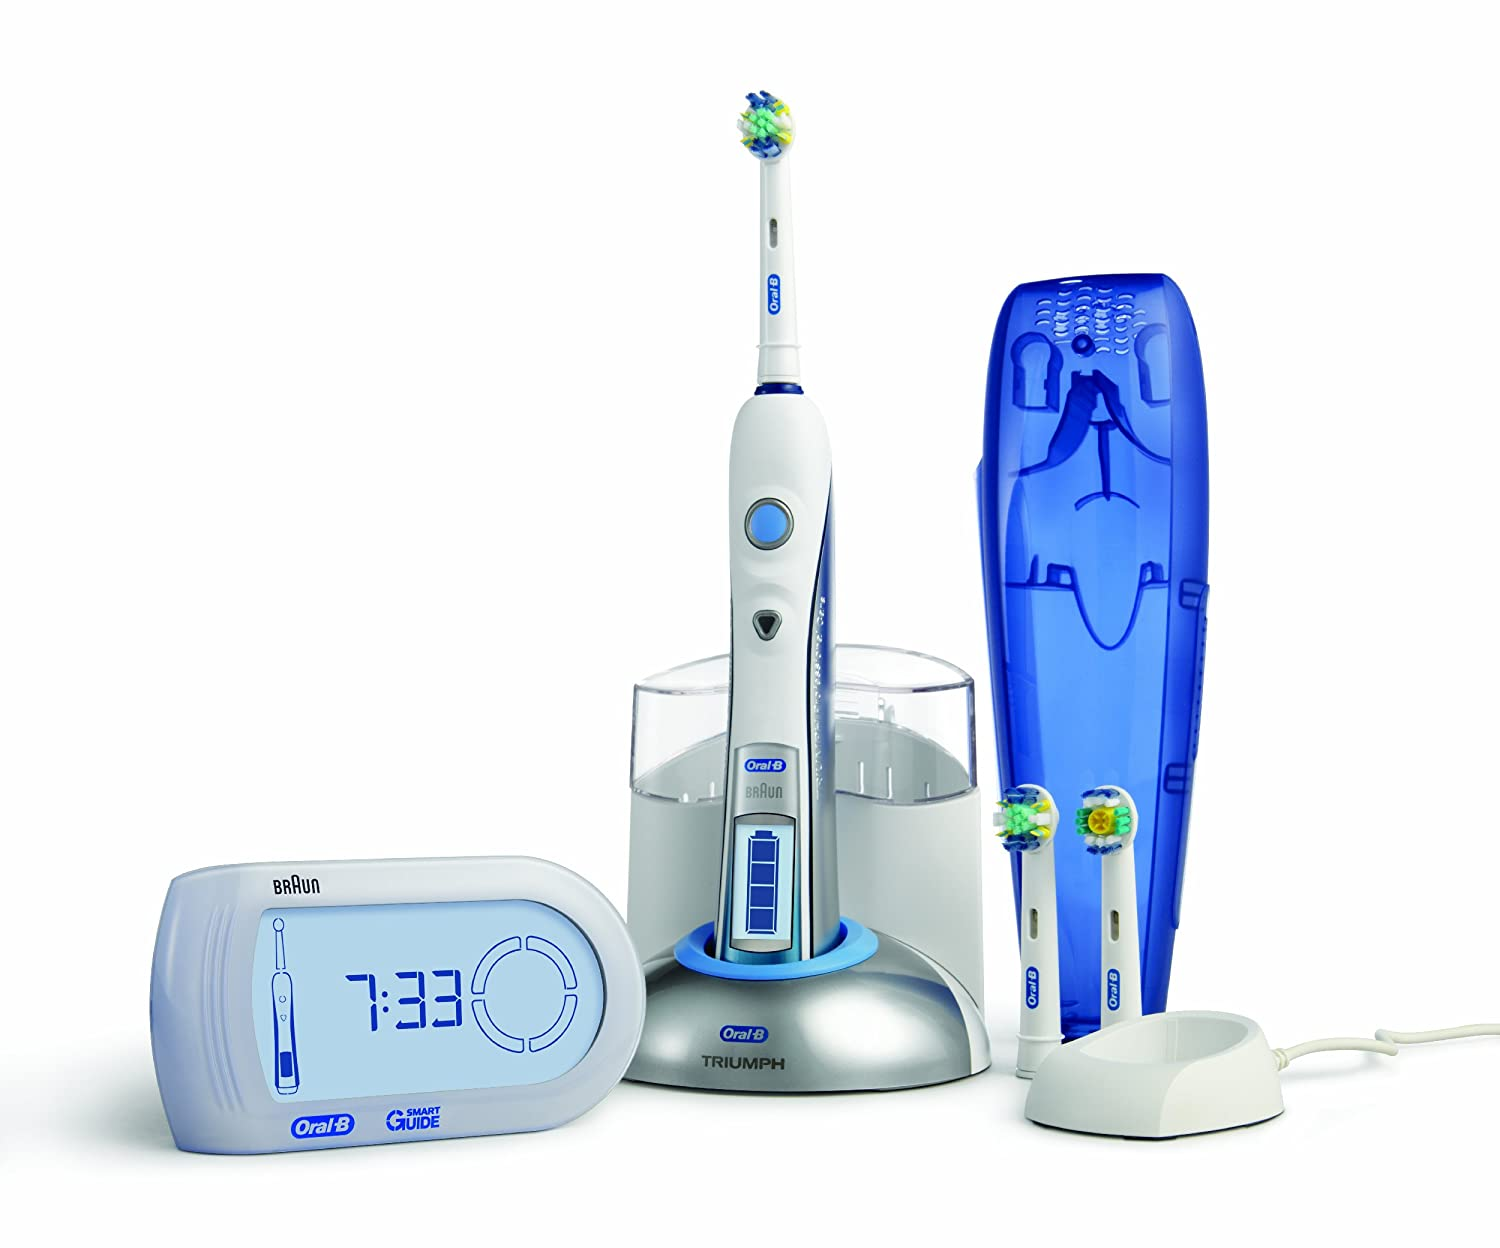 Braun Oral-B Professional Care 9900 Triumph with SmartGuide Rechargeable  Power Toothbrush  Amazon.co.uk  Health   Personal Care 3ea3c2926bca